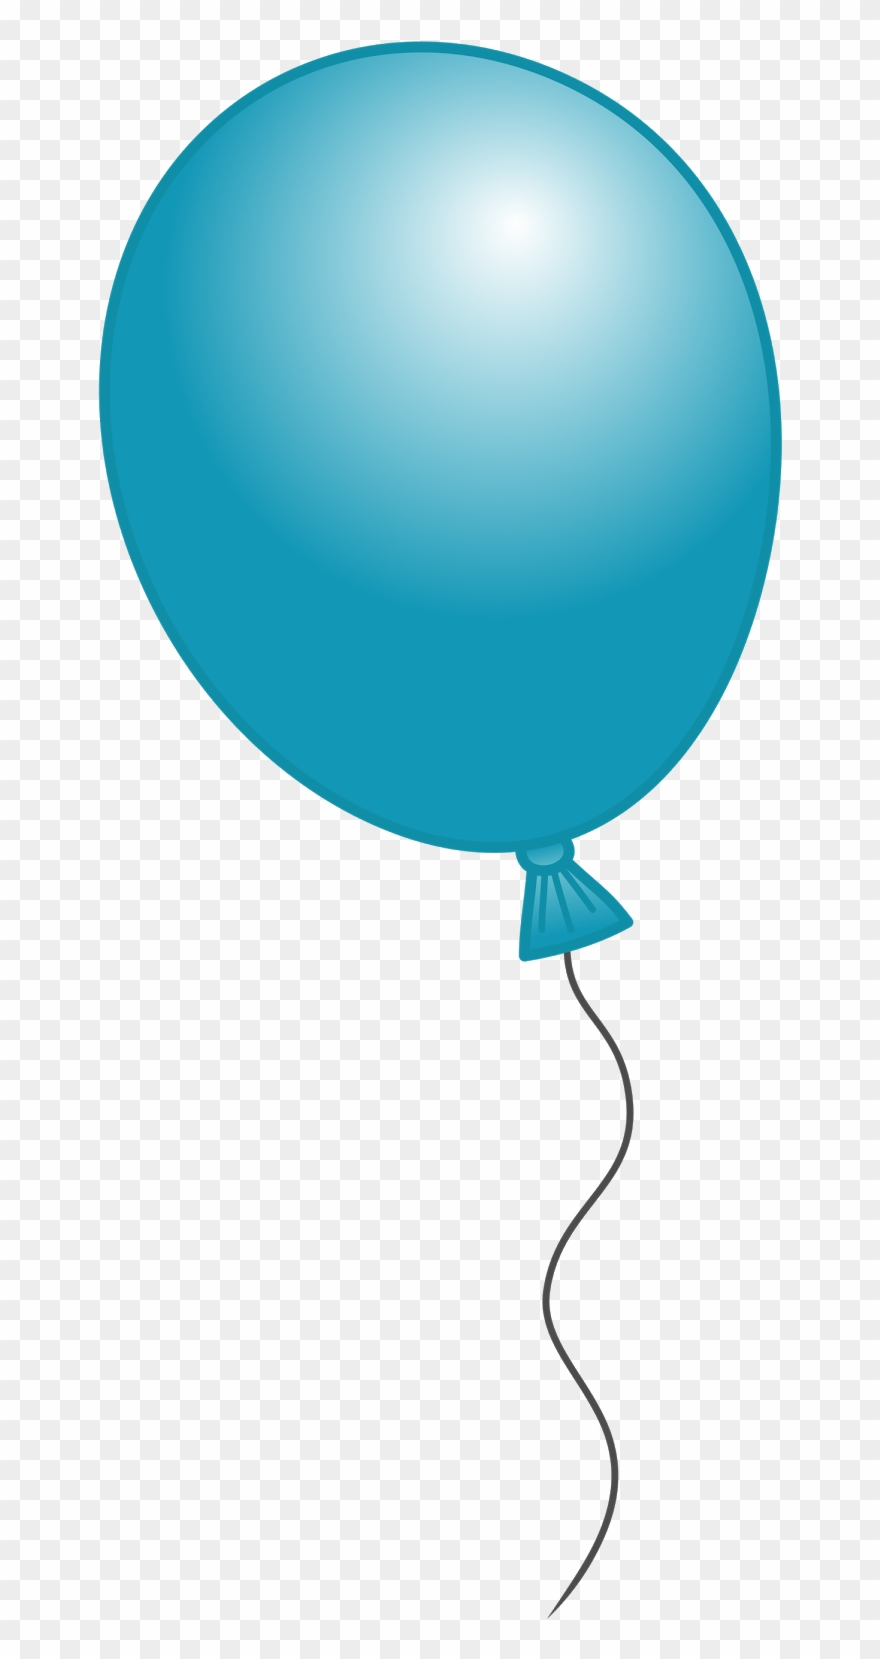 hight resolution of black balloons cliparts free download clip art free clipart balloon transparent background png download